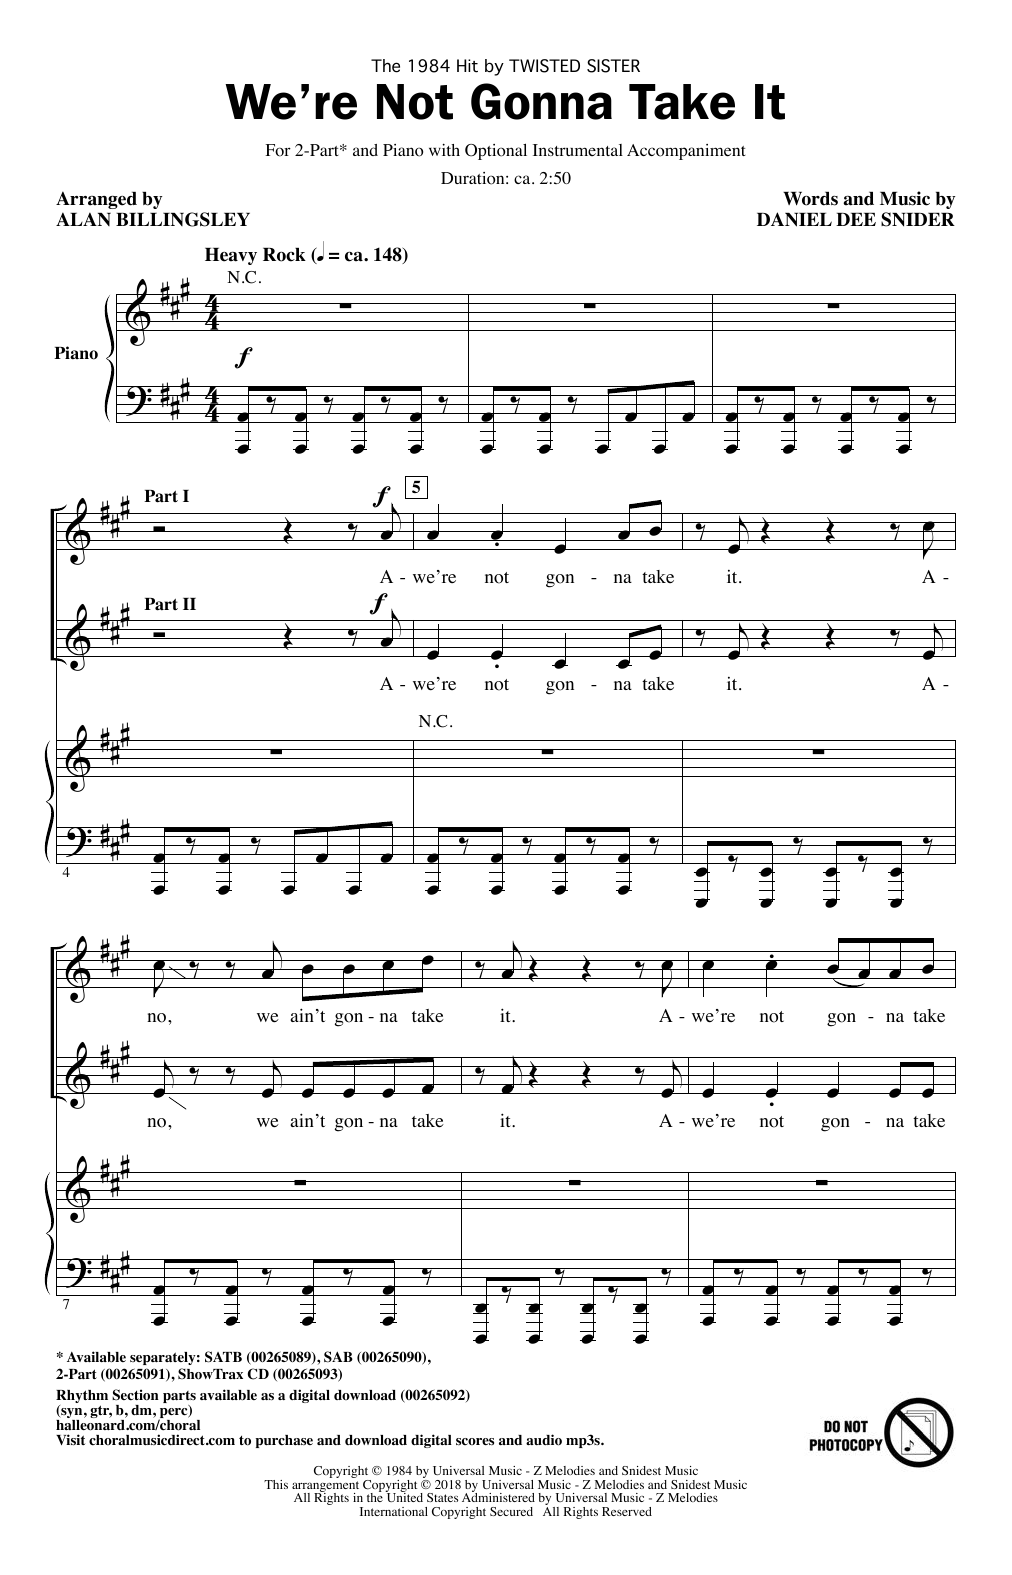 We're Not Gonna Take It Sheet Music